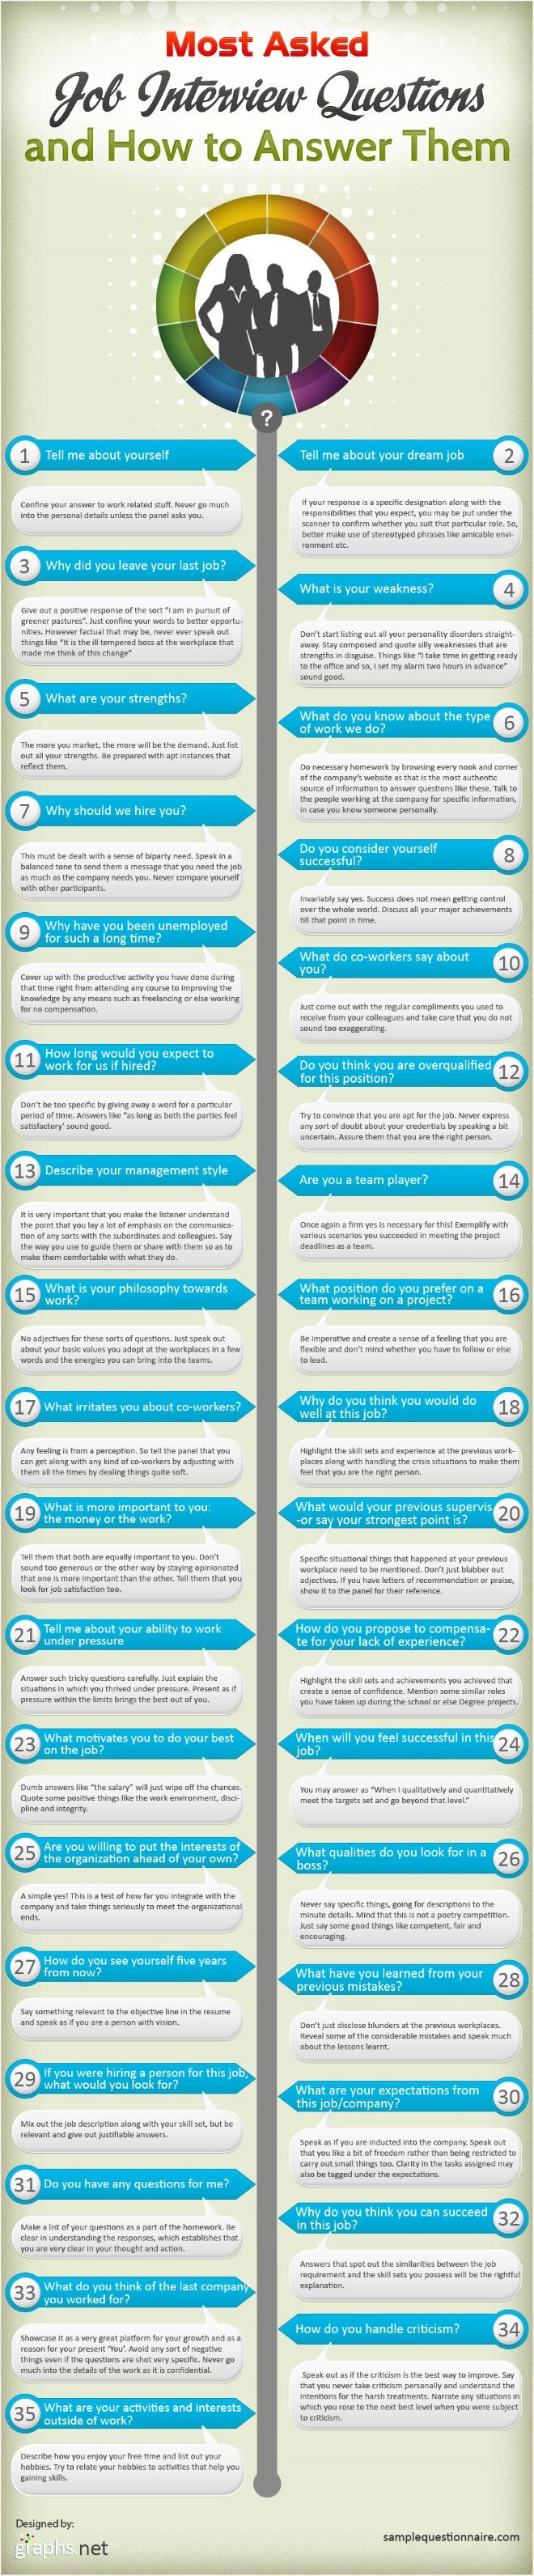 Ace the Most Common Job Interview Questions Infographic